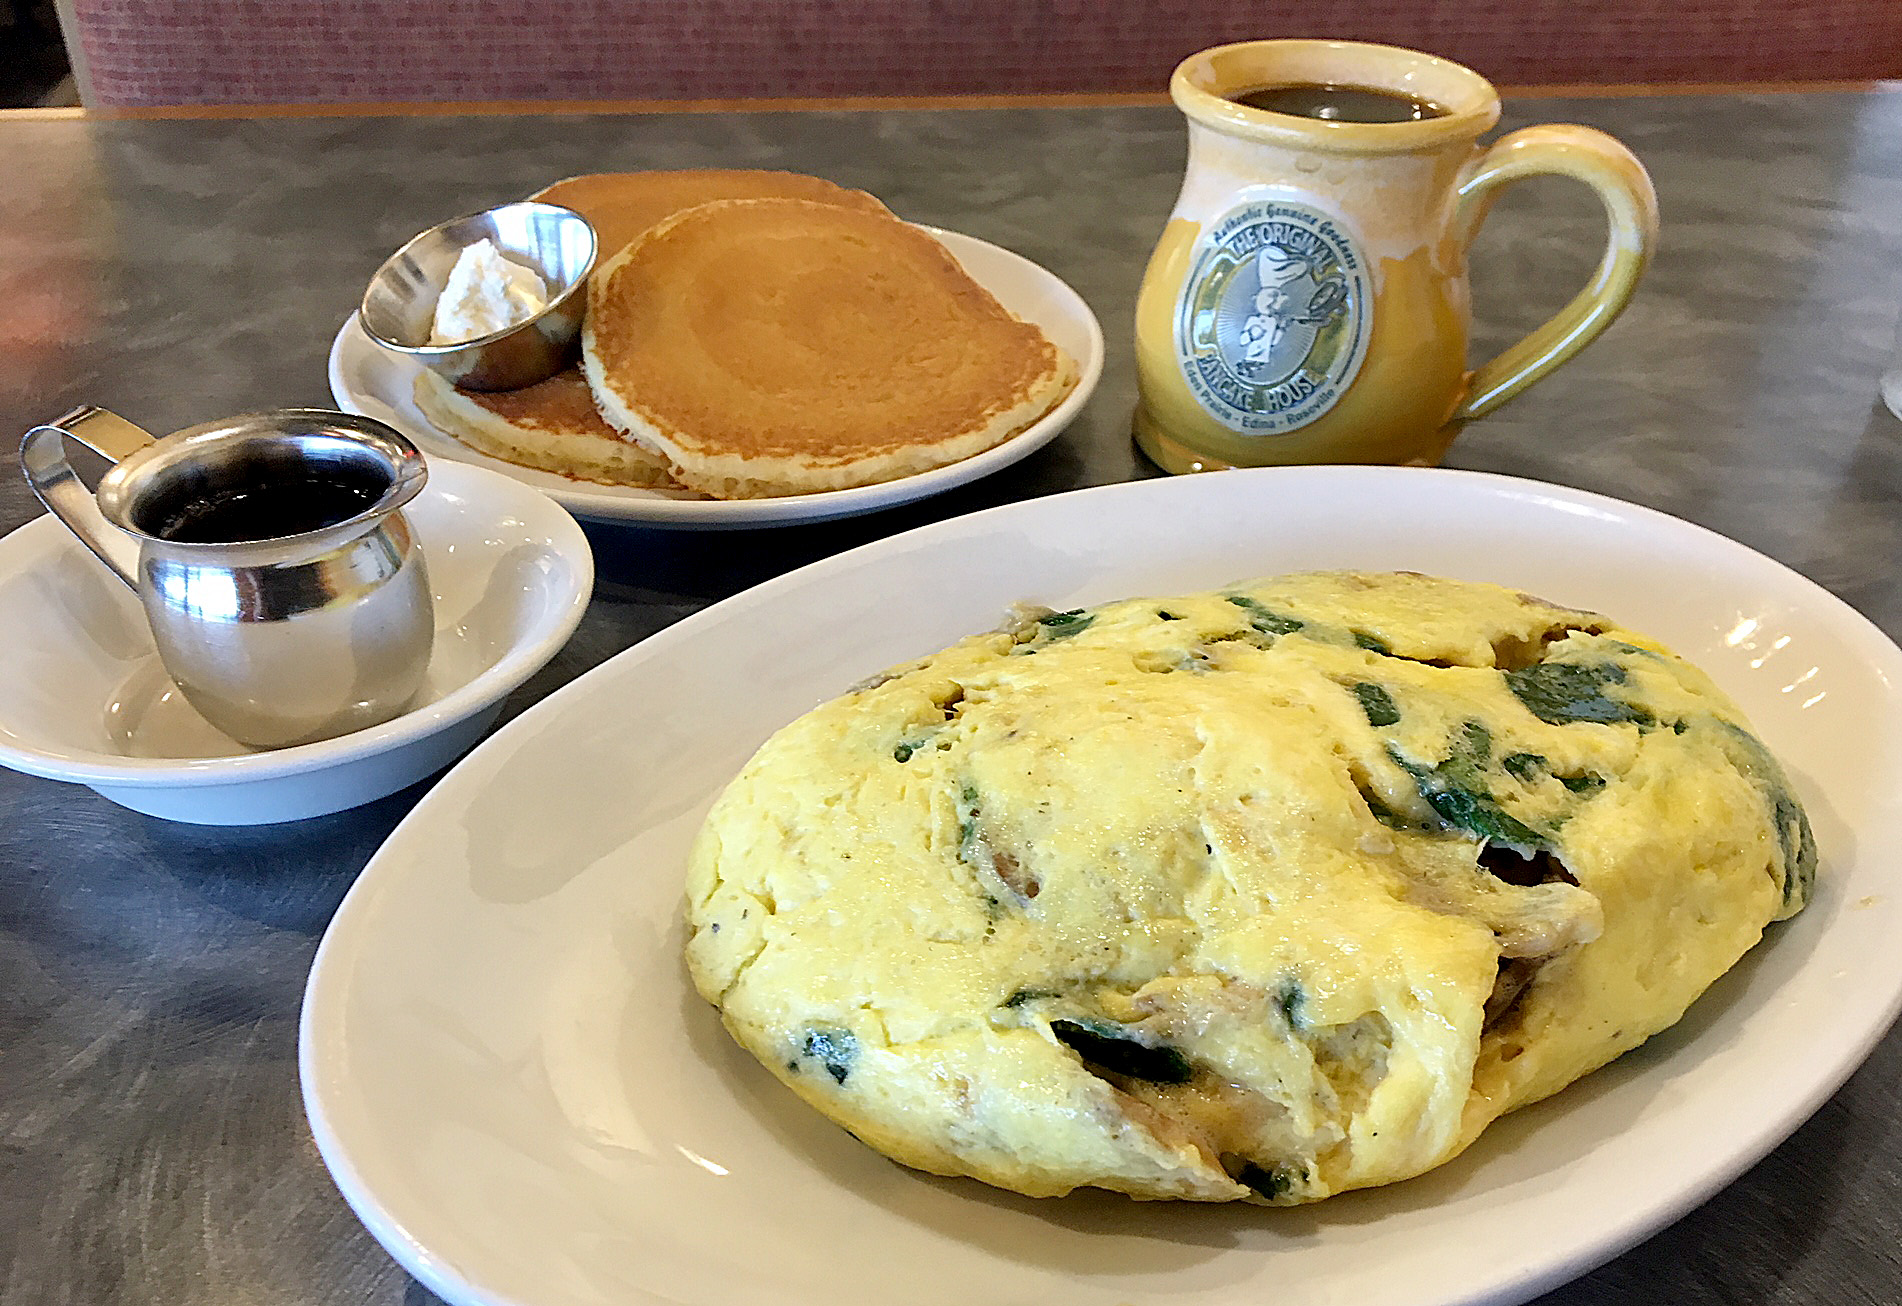 I woke up early the next morning, so I asked my old buddy Trip Advisor to find me the best local breakfast spot. I ended up with this soufflé omelet and pancakes. I'm still full.